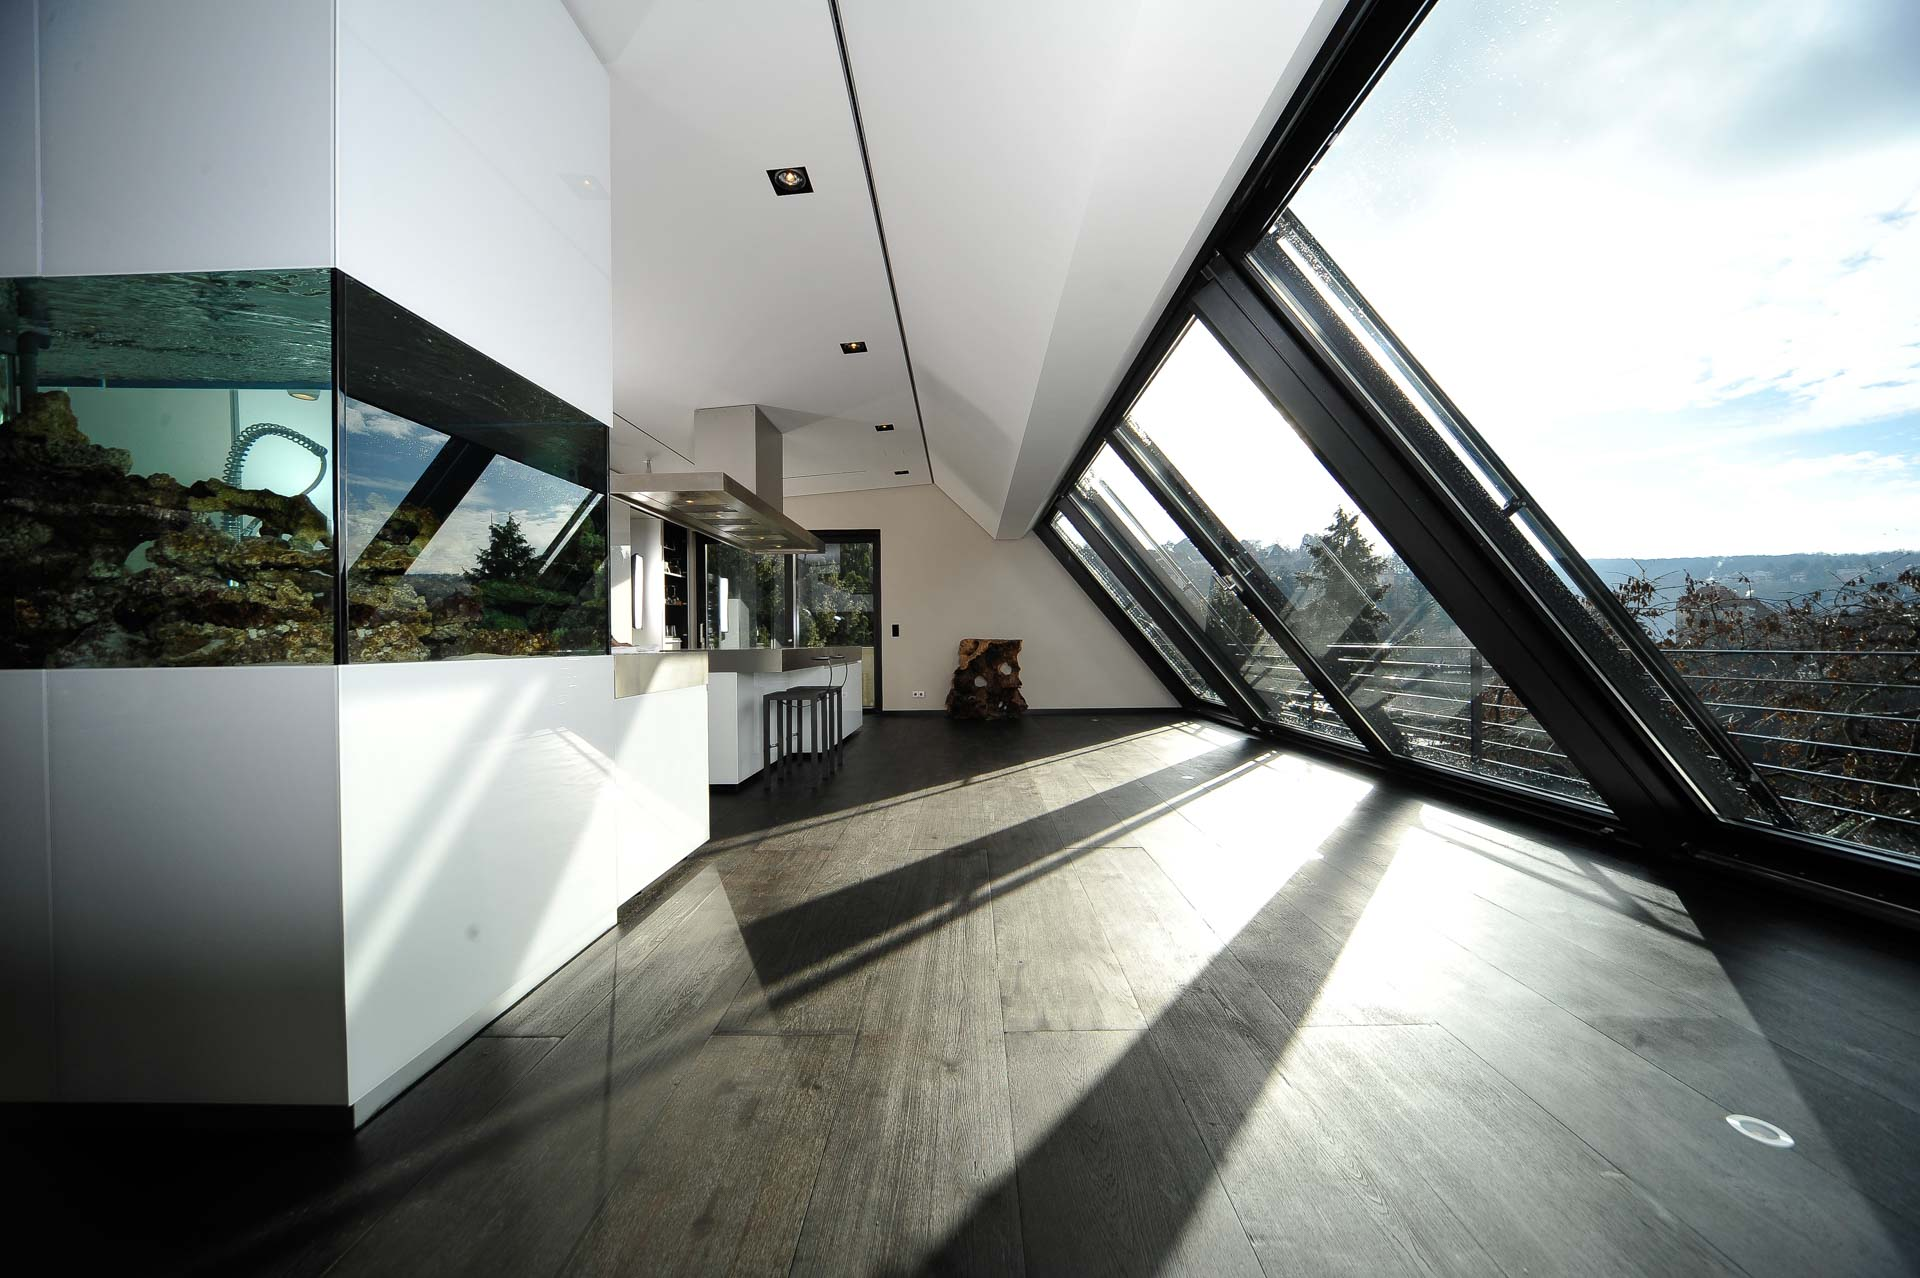 Panorama_roof_slidingwindow in Stuttgart (object 1071). Modern roof extension with great view over Stuttgart through 4-part Panorama-AL roof sliding window (900 cm x 350 cm)